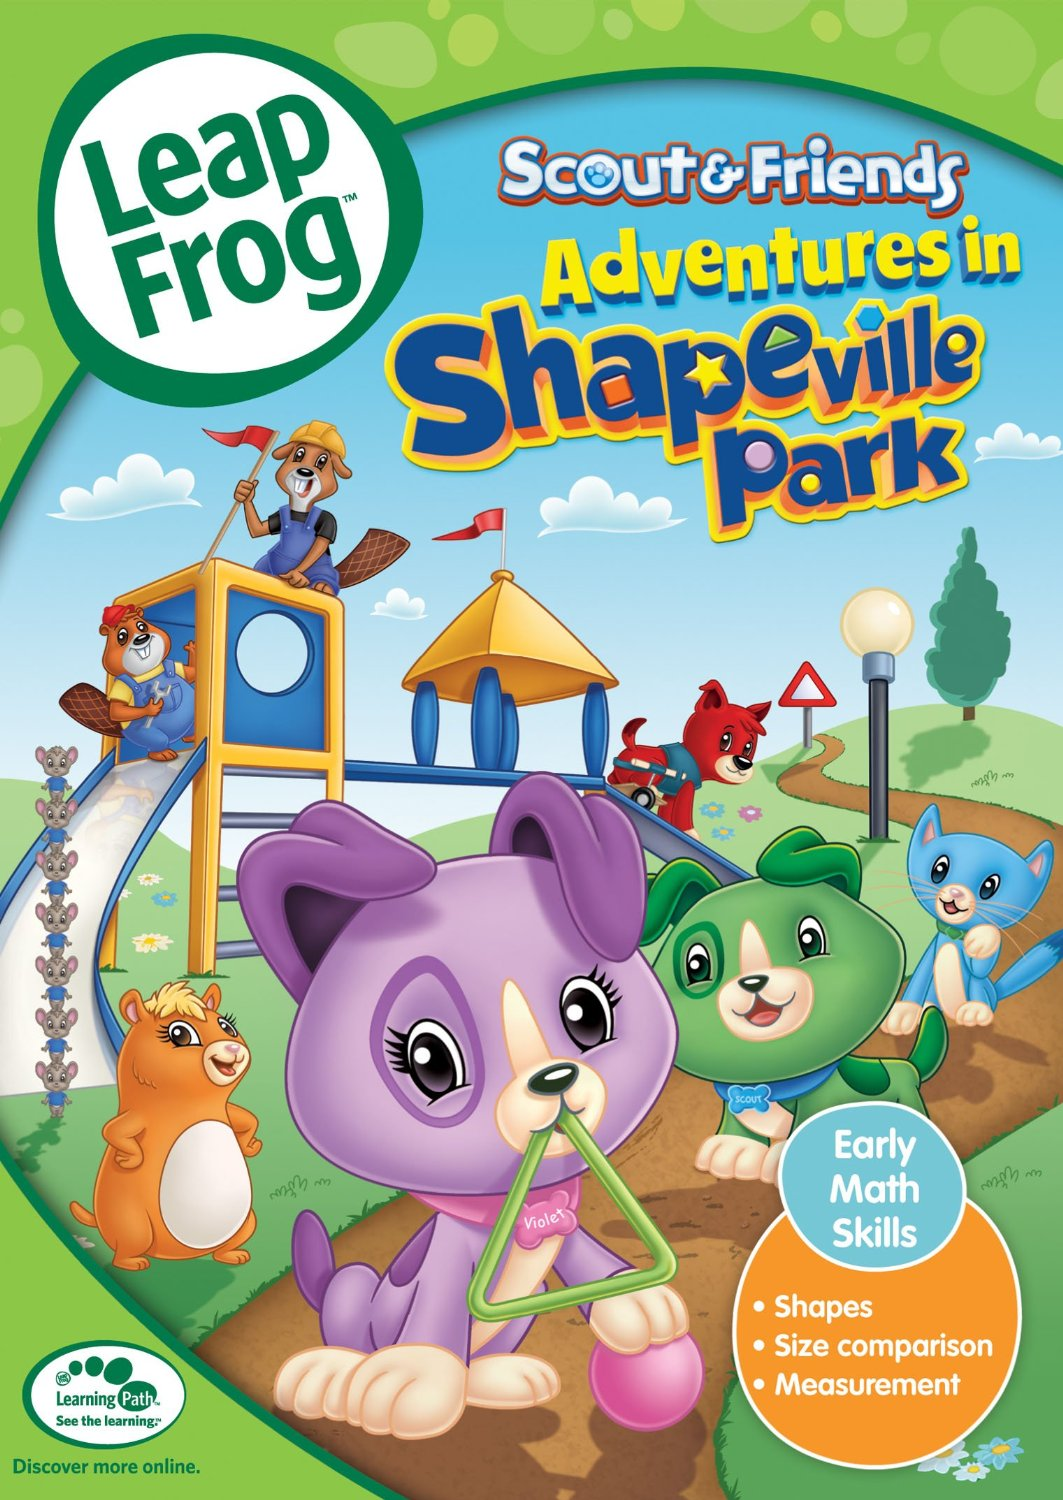 Leapfrog tag learn to read pen